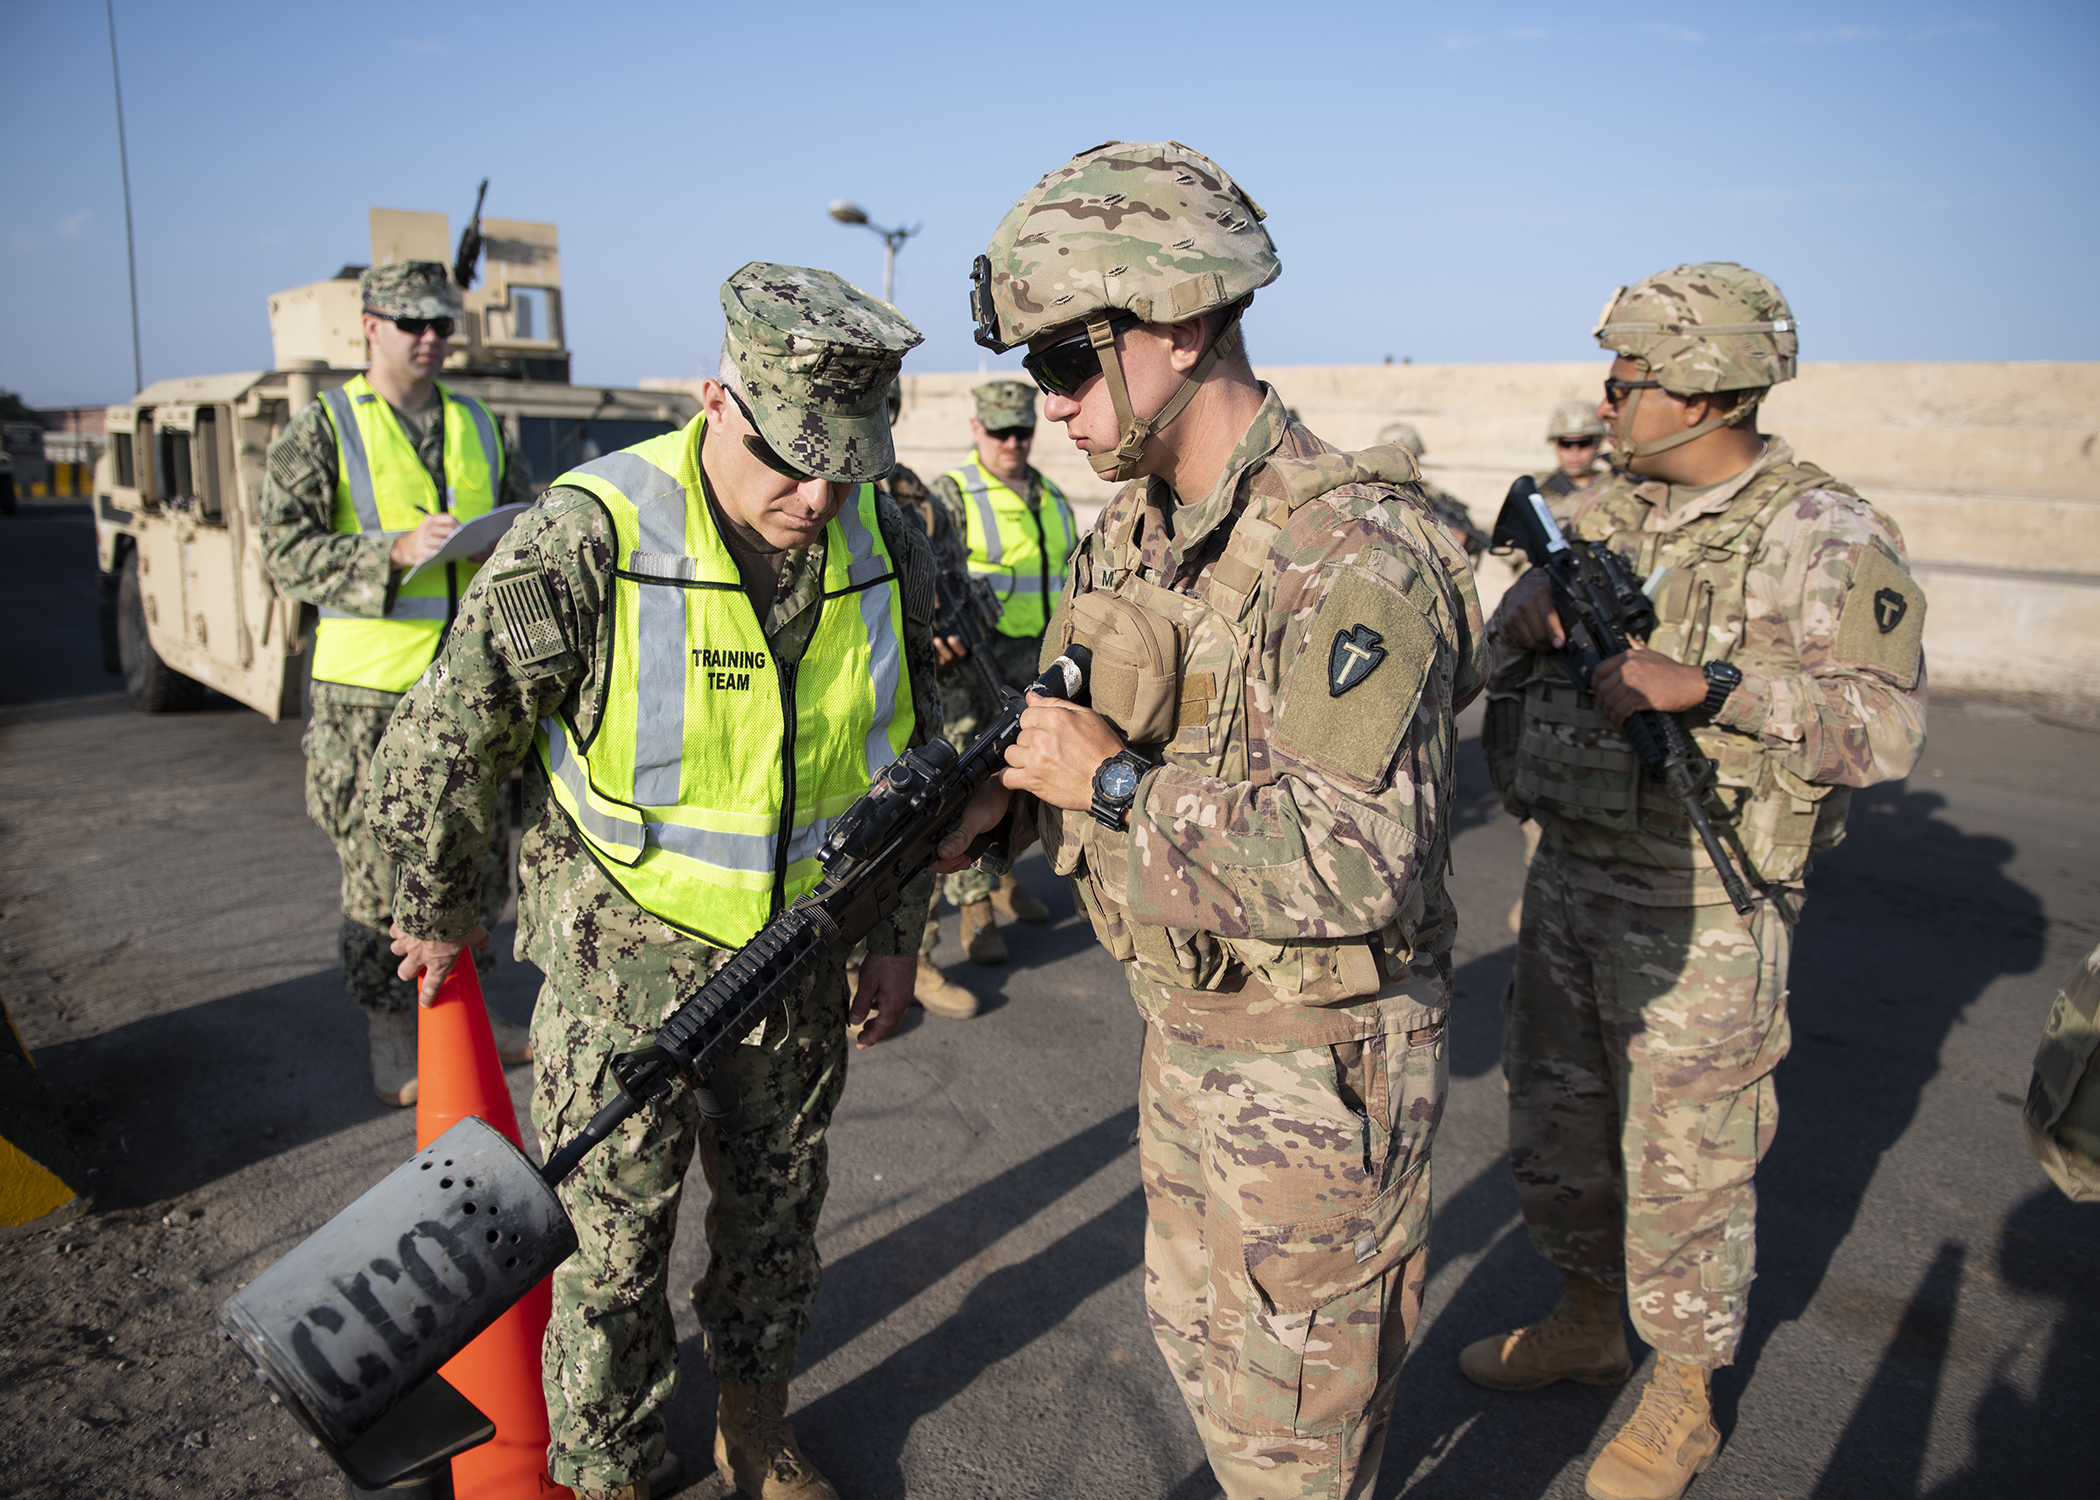 U.S. Navy Capt. Charles DeGilio, left, commanding officer, Camp Lemonnier, Djibouti, ensures Task Force Alamo weapons are safe and clear of ammunition prior to the first-ever U.S. military exercise at the Port of Djibouti, Djibouti, Dec. 19, 2018. The exercise integrated U.S. Navy, Army and Djibouti Port Authority assets. (U.S. Air Force photo by Tech. Sgt. Shawn Nickel)